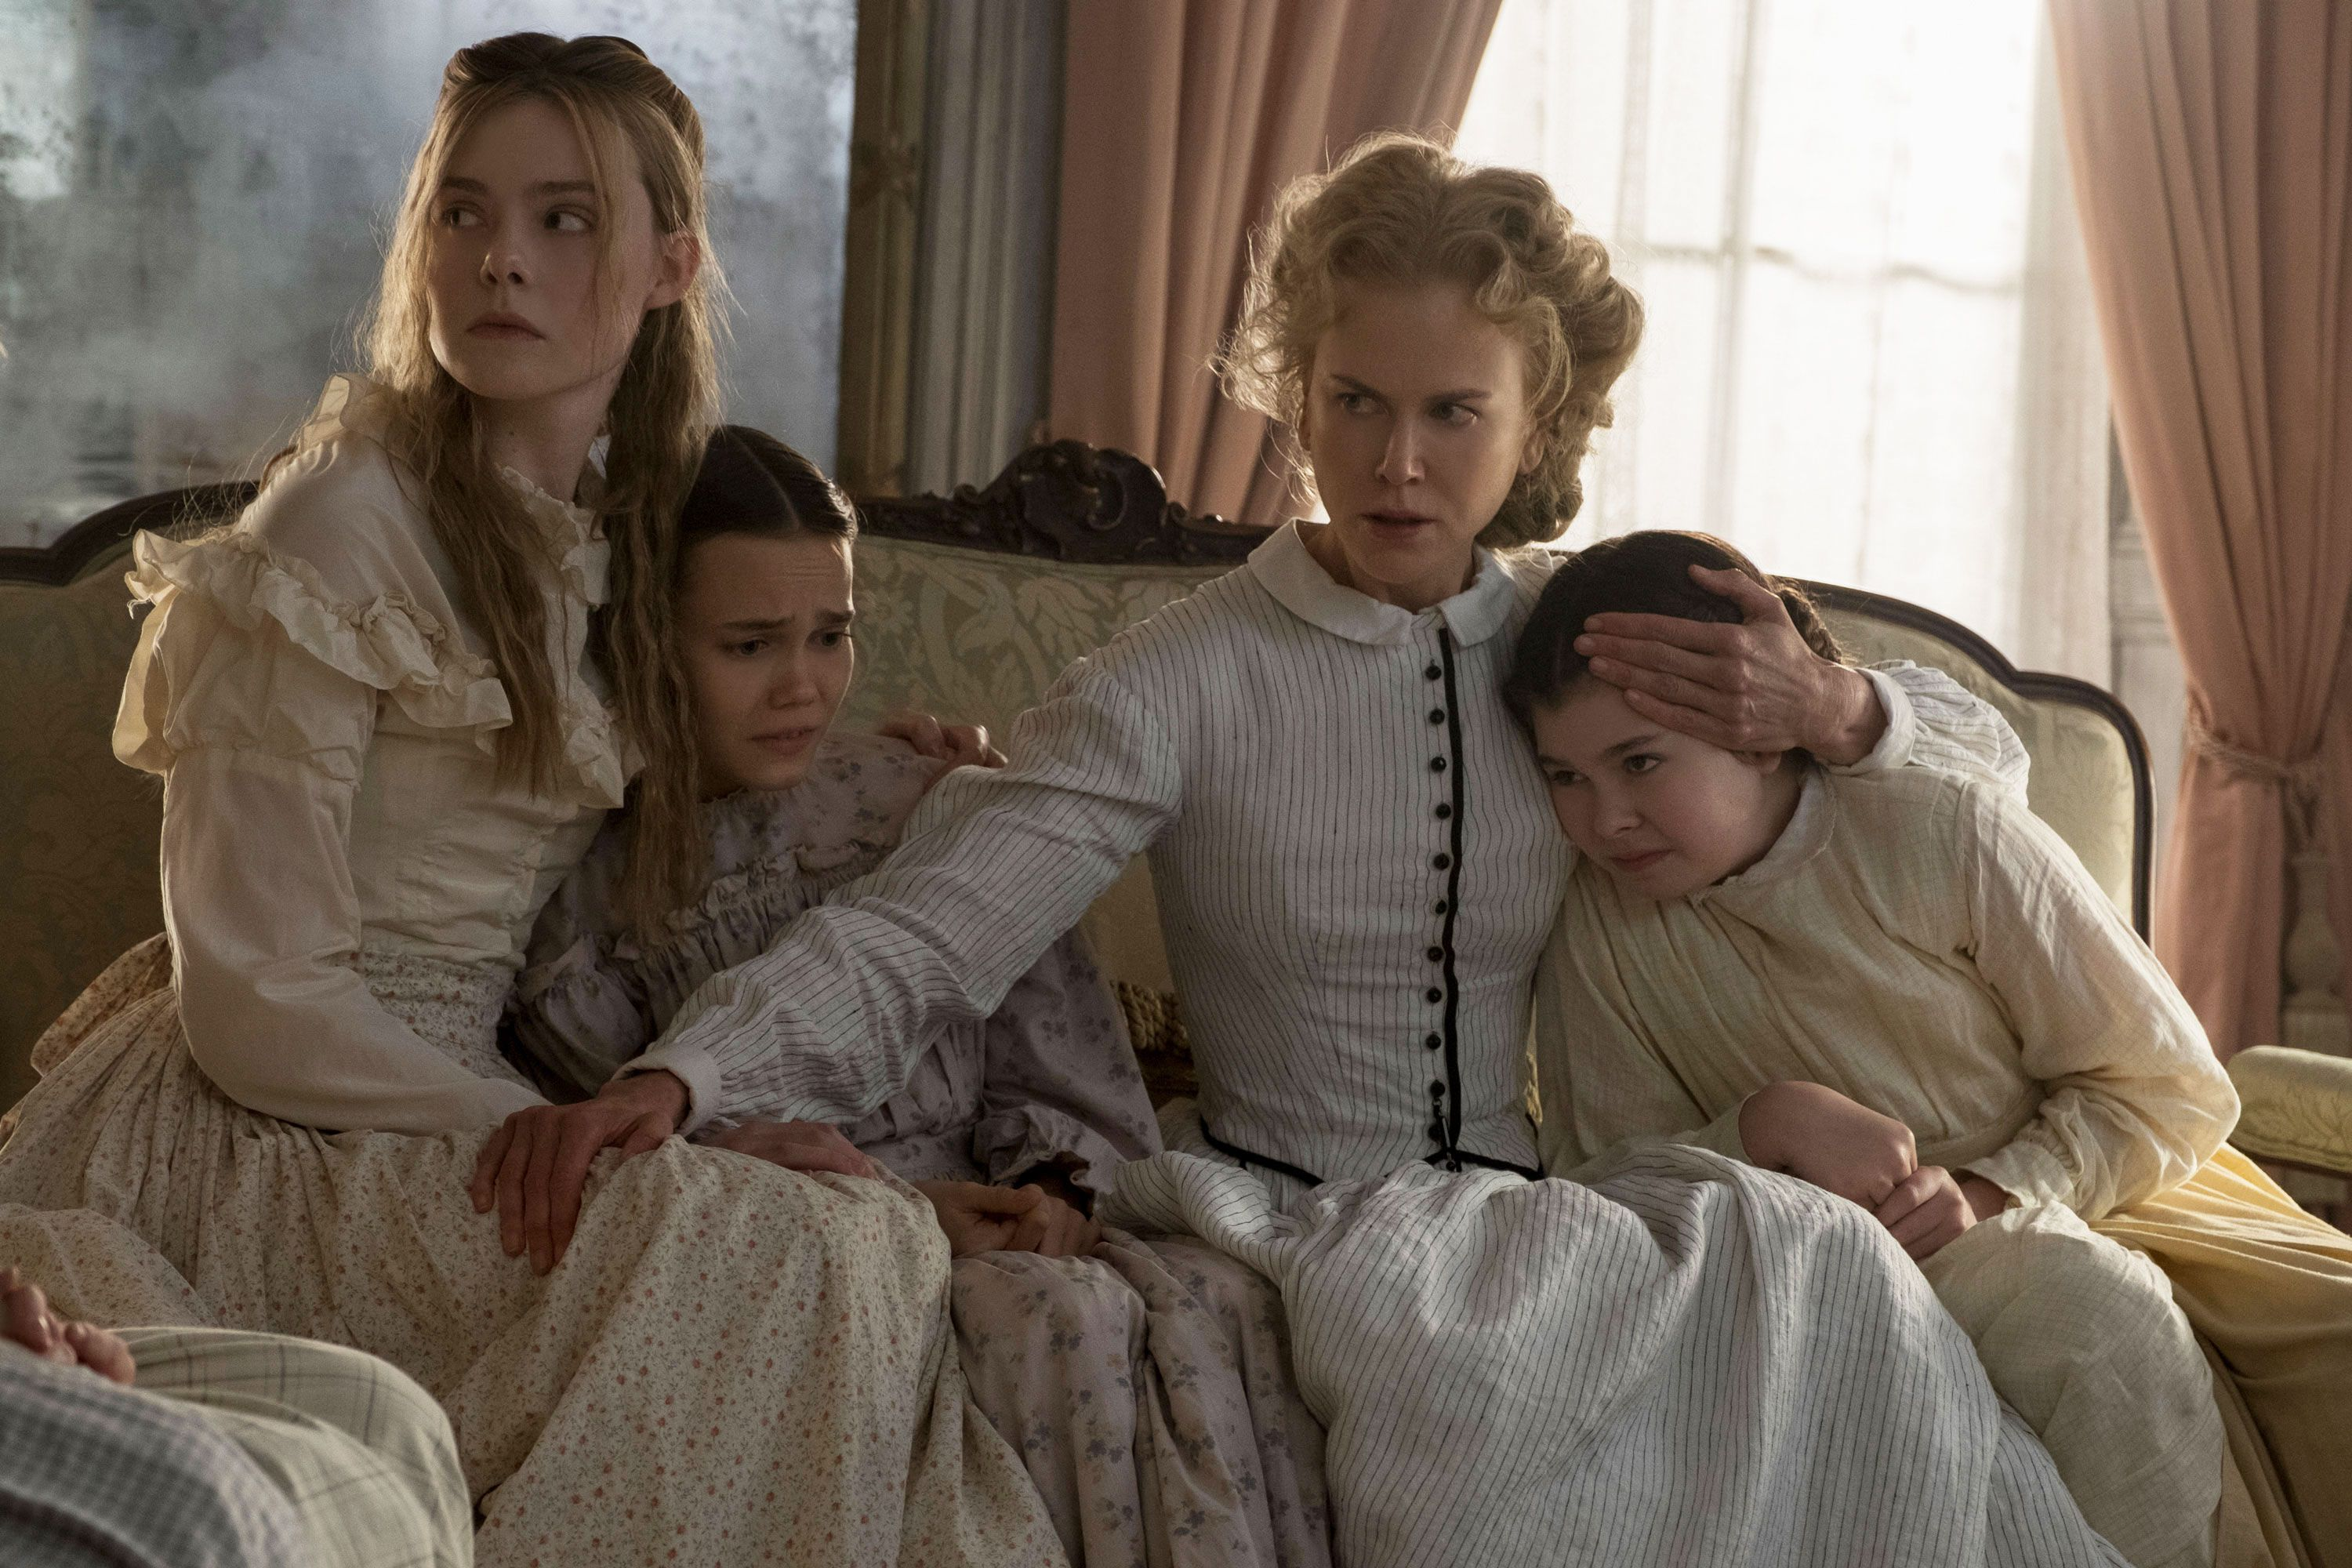 The Beguiled Subtly Tackles Race Even When You Don't See It